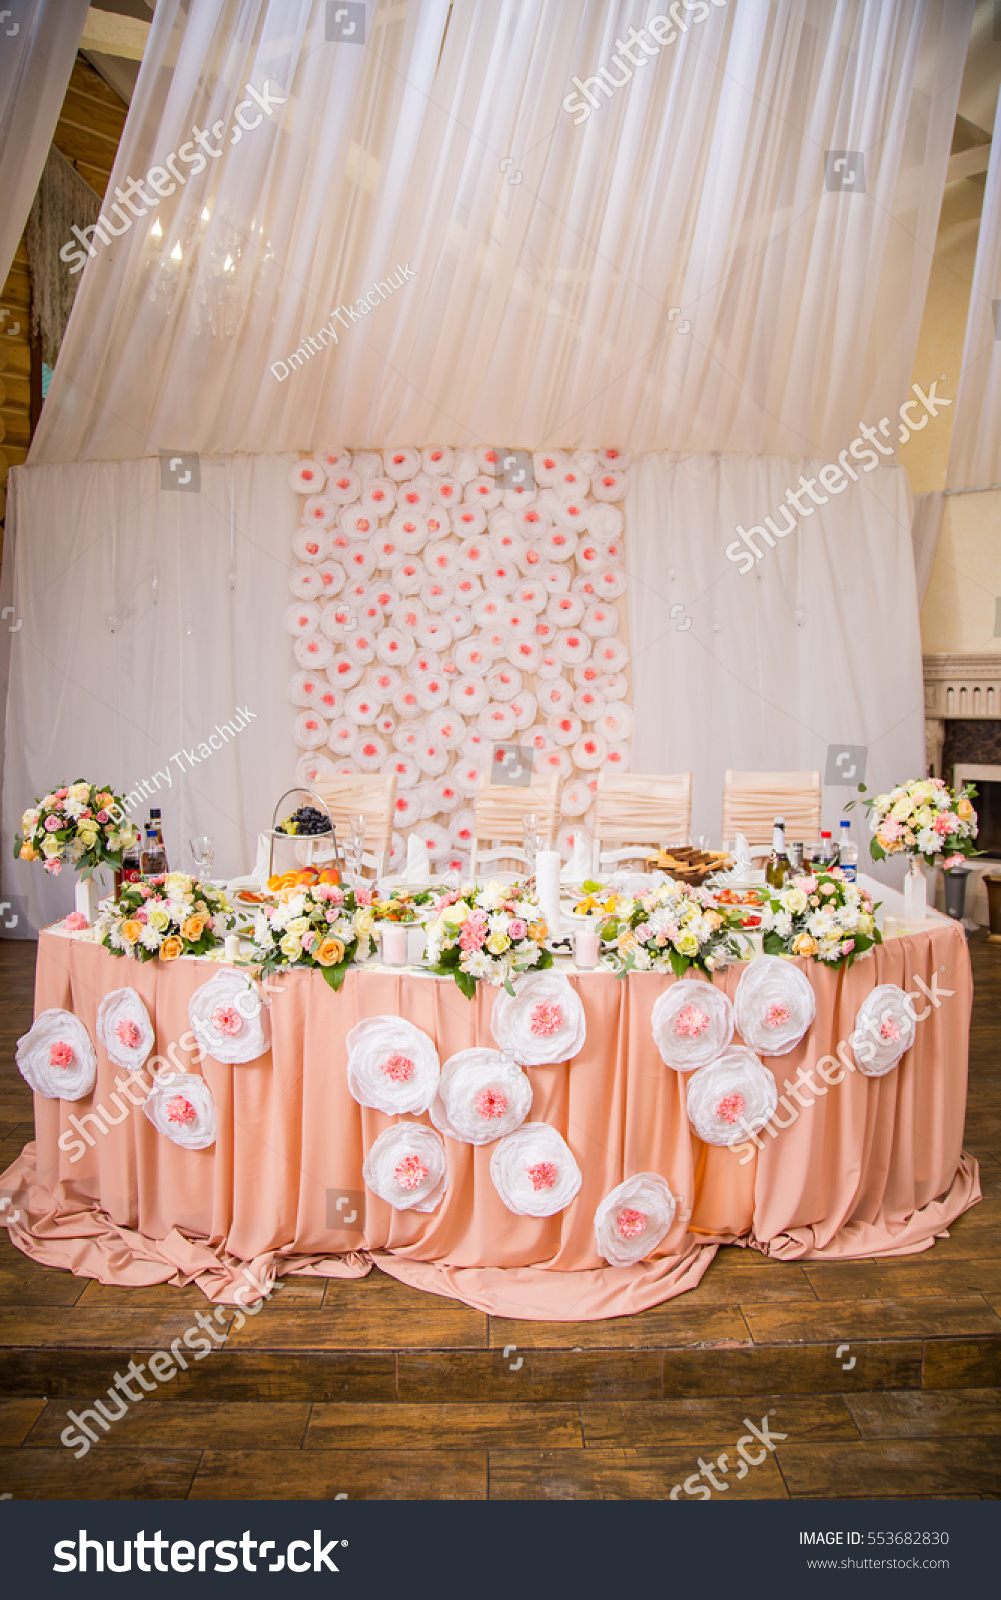 Beautiful wedding decorations peach color fresh stock photo edit beautiful wedding decorations in peach color with fresh flowers junglespirit Image collections